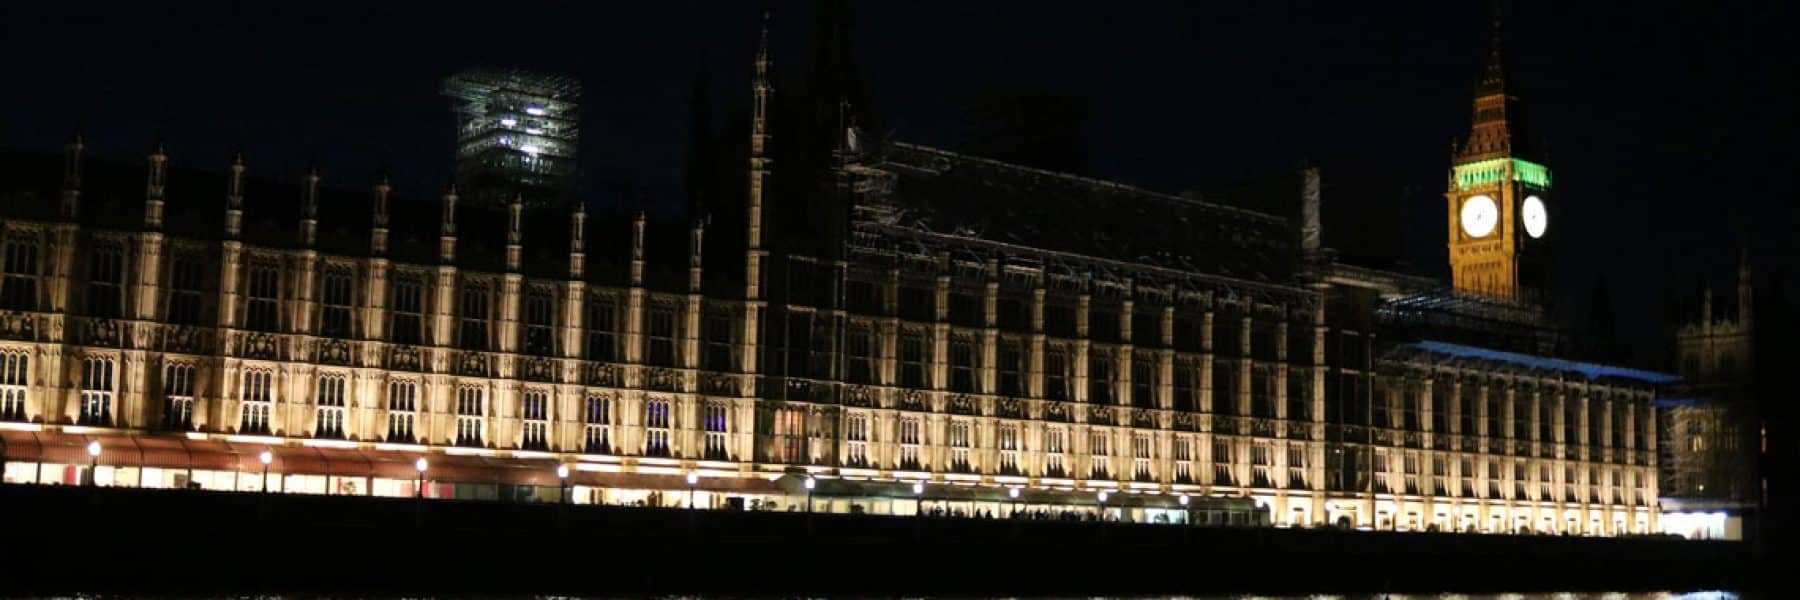 The New Palace of Westminster (Houses of Parliament) at night